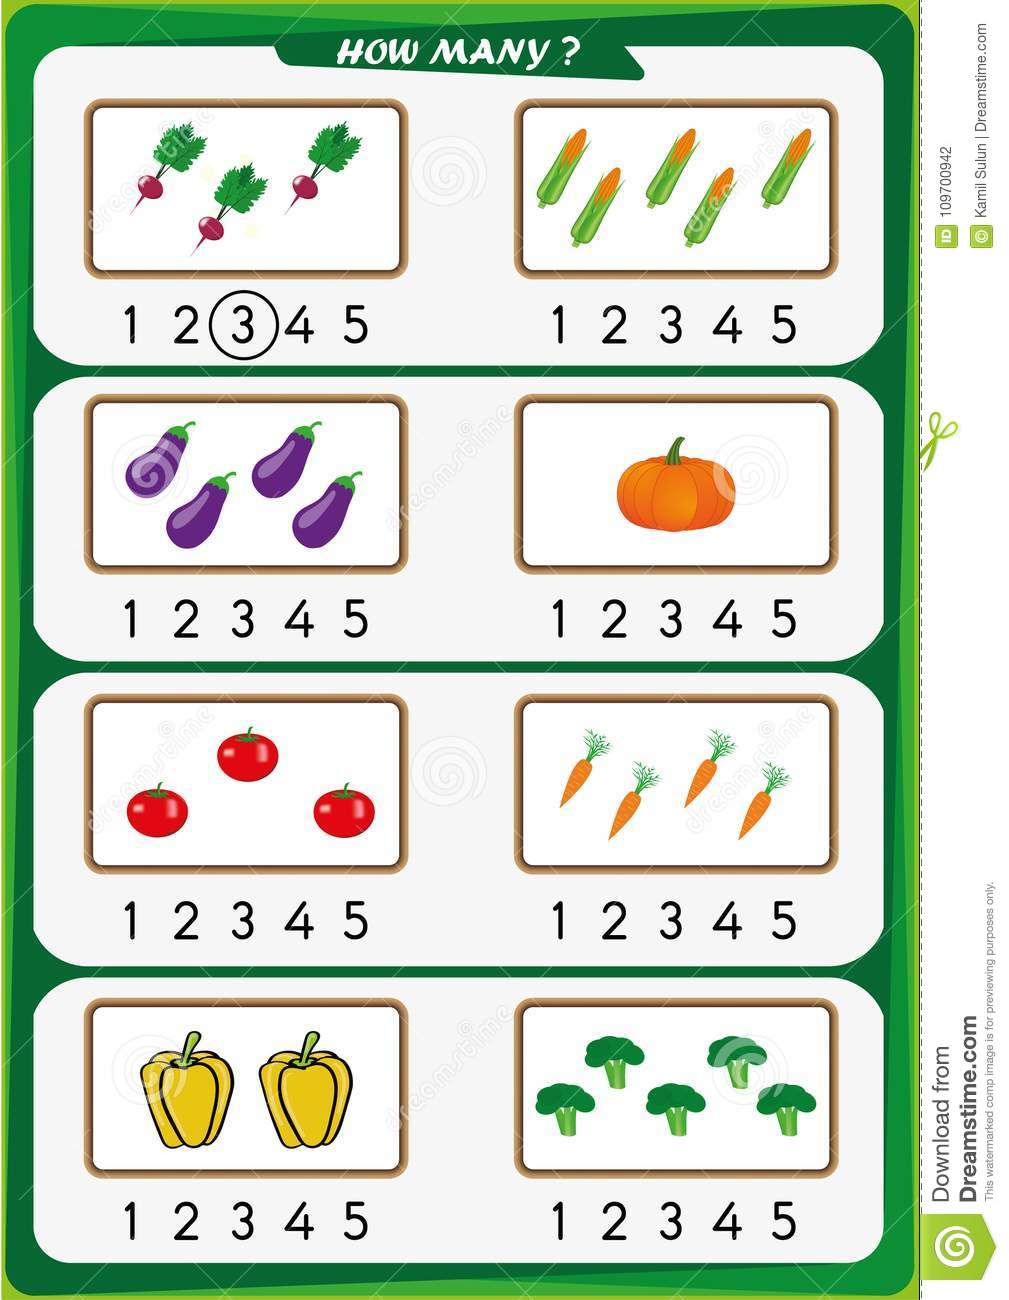 Worksheet For Kindergarten Kids Count The Number Of Objects Learn